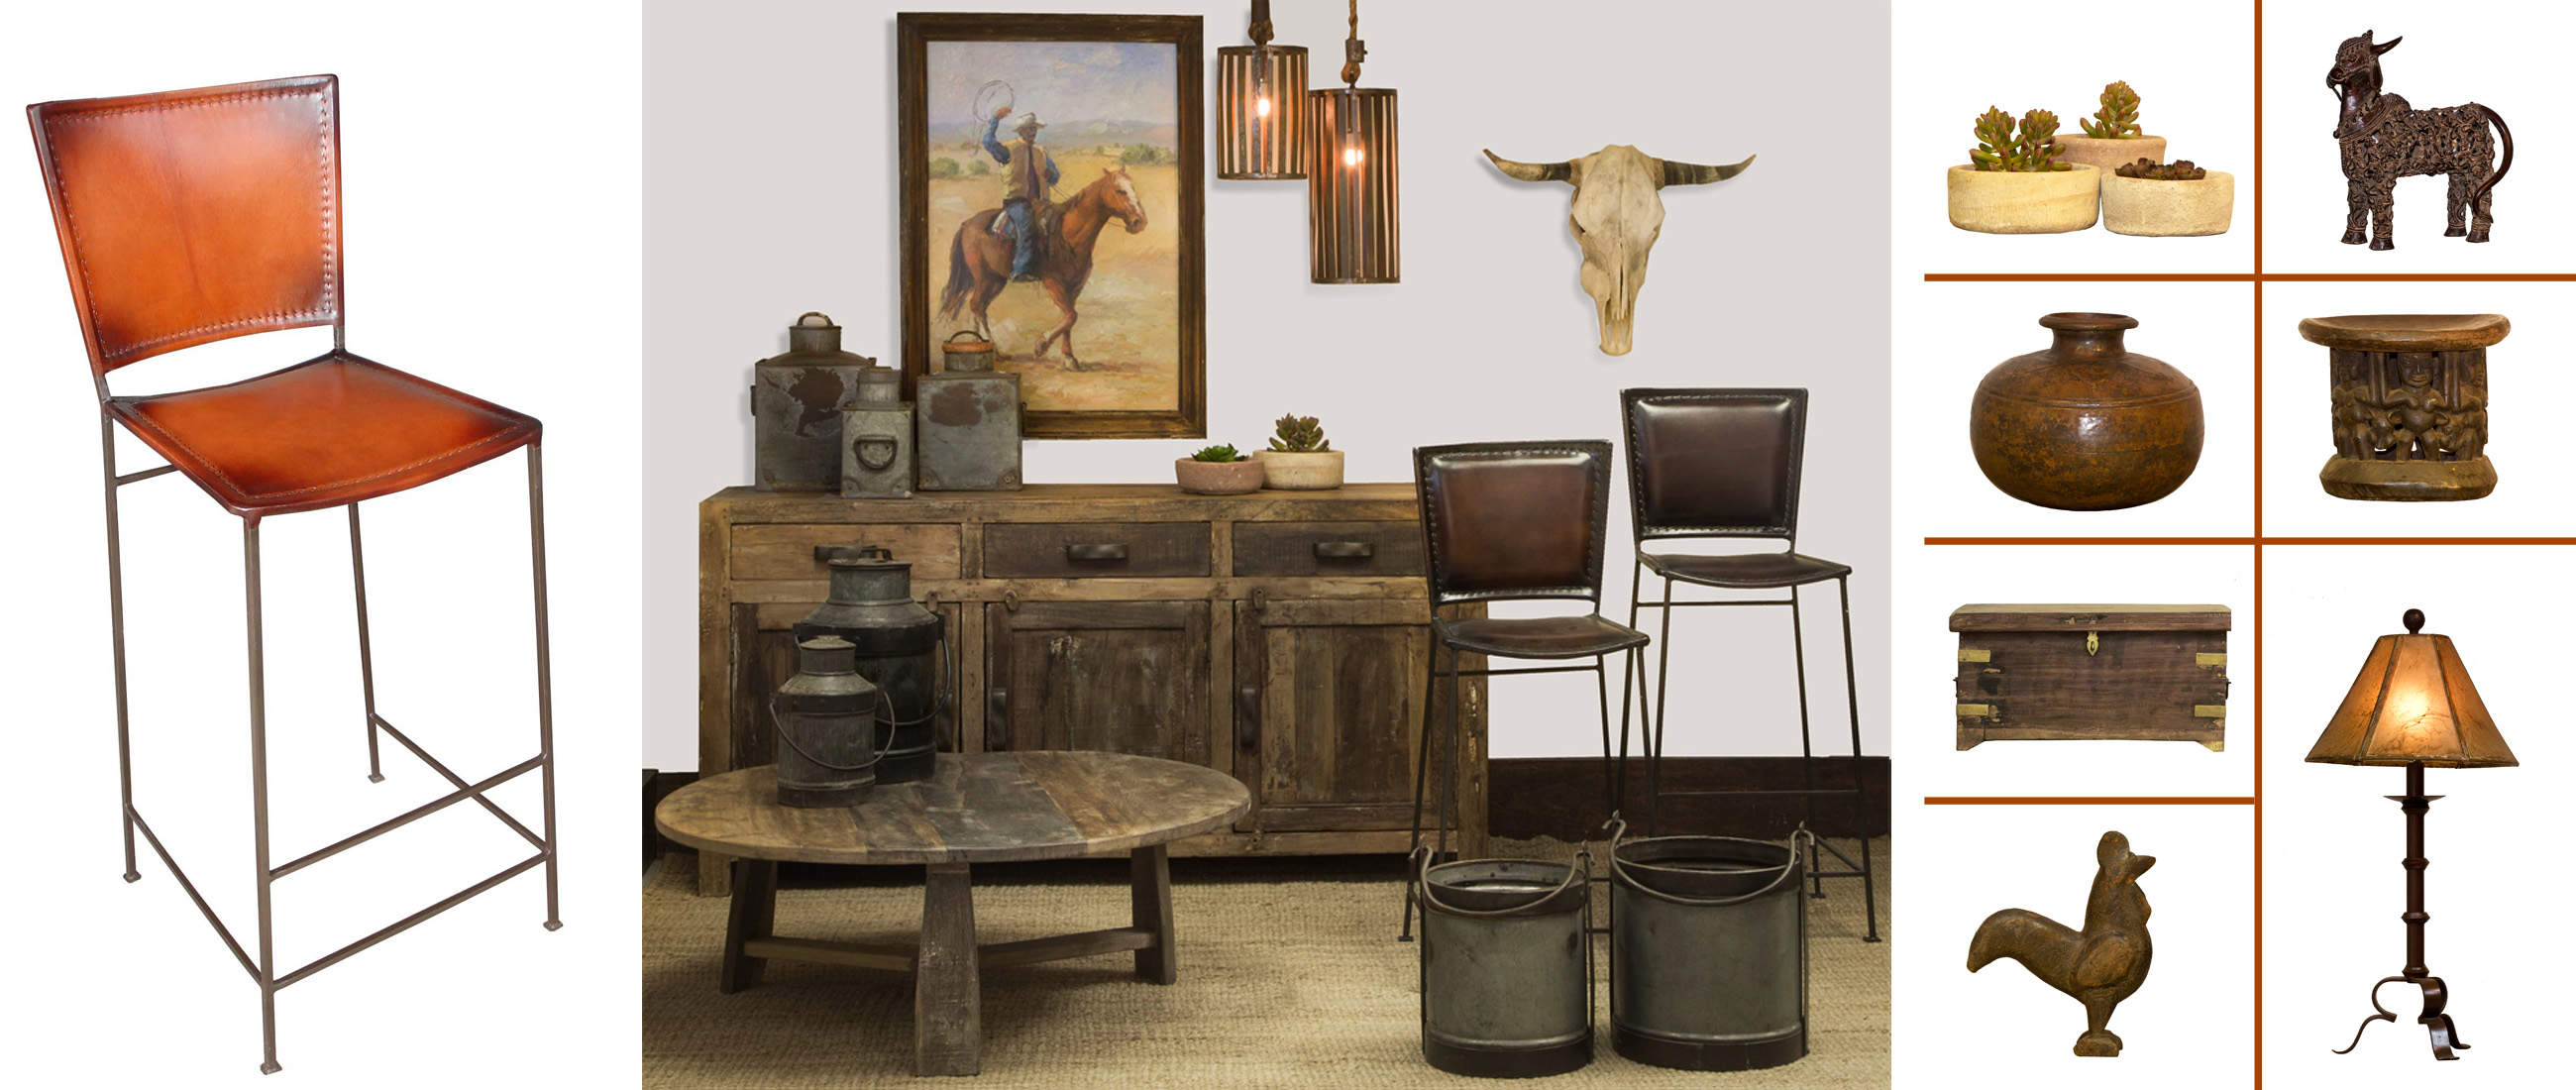 prev. Indus Design Imports   The largest wholesale rustic and old world